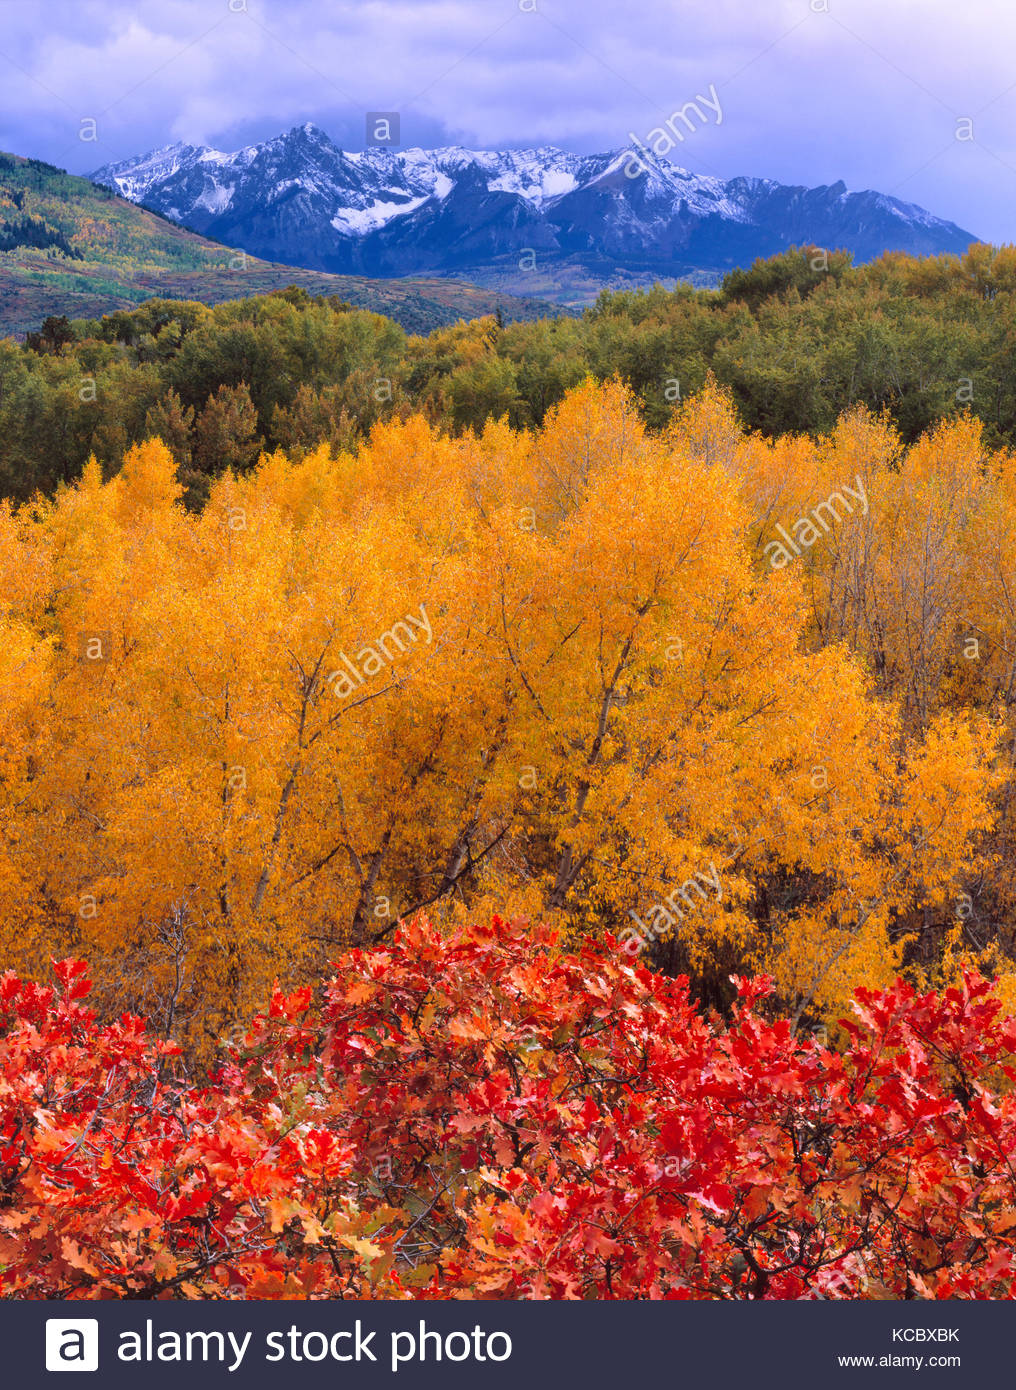 Gamble Oak, Narrowleaf Cottonwood and the San Juan Range, Uncompahgre National Forest, Colorado - Stock Image